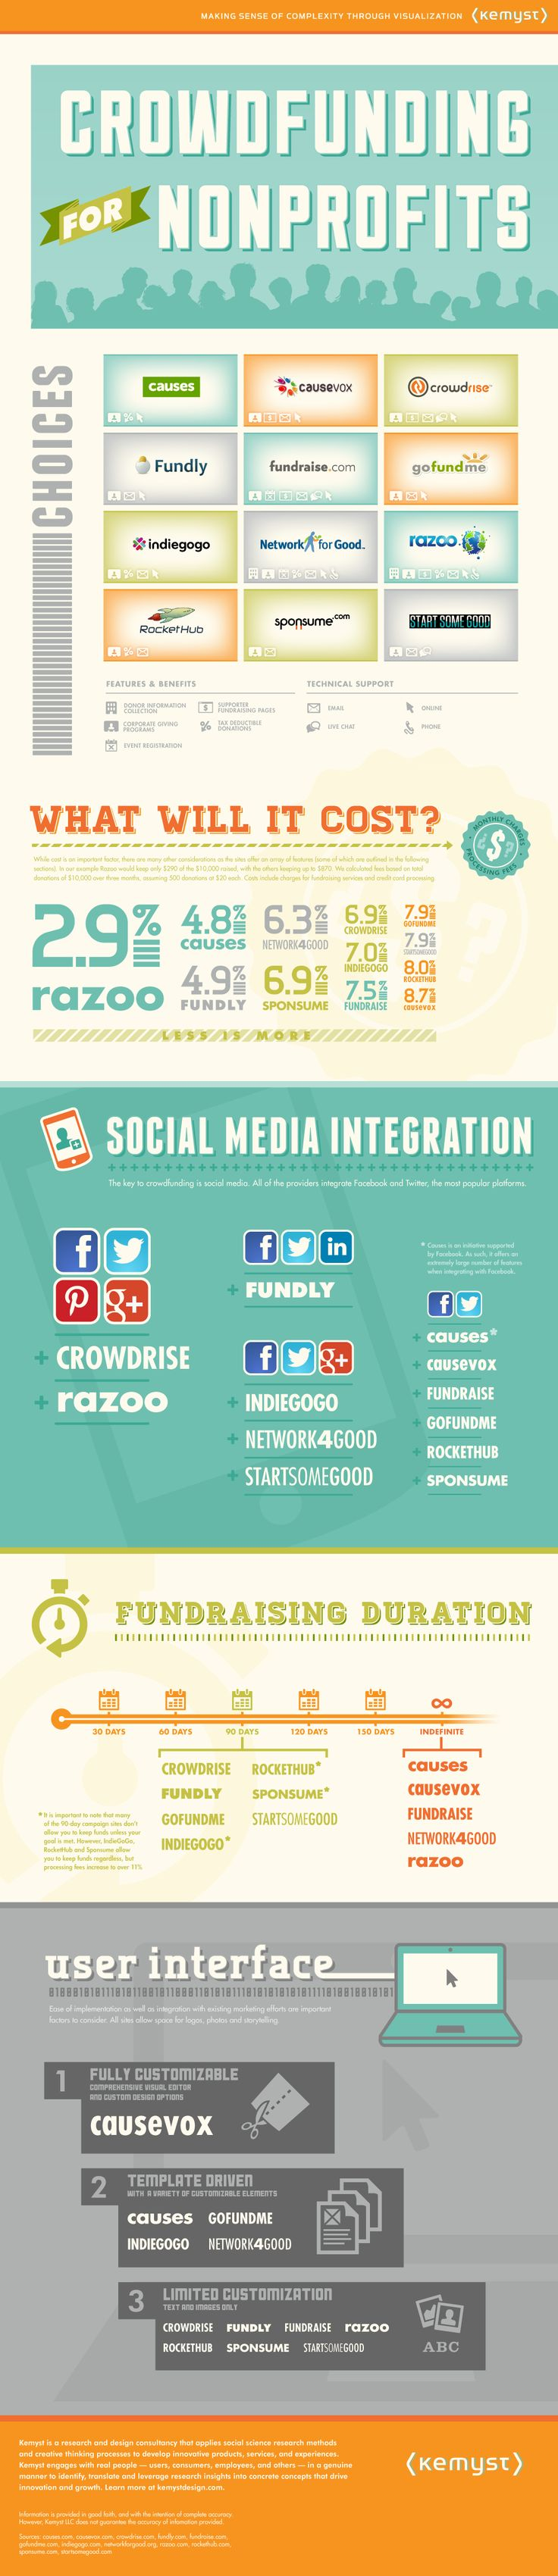 fundraising infographic : Resource ThuRsday #4:  Infographic fave #2